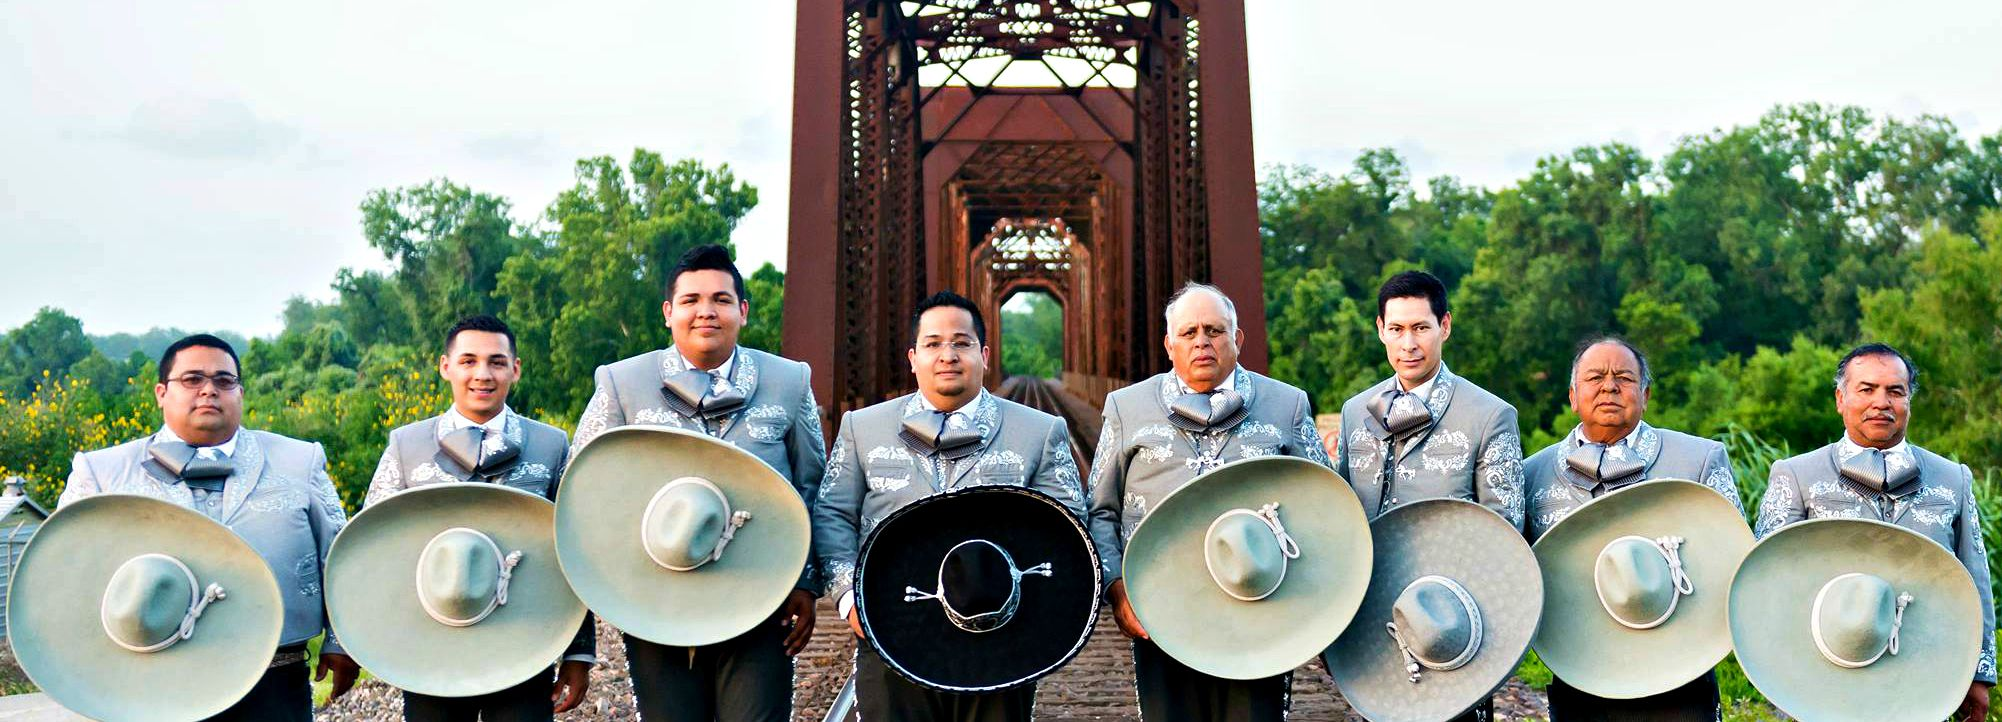 mariachi band houston texas